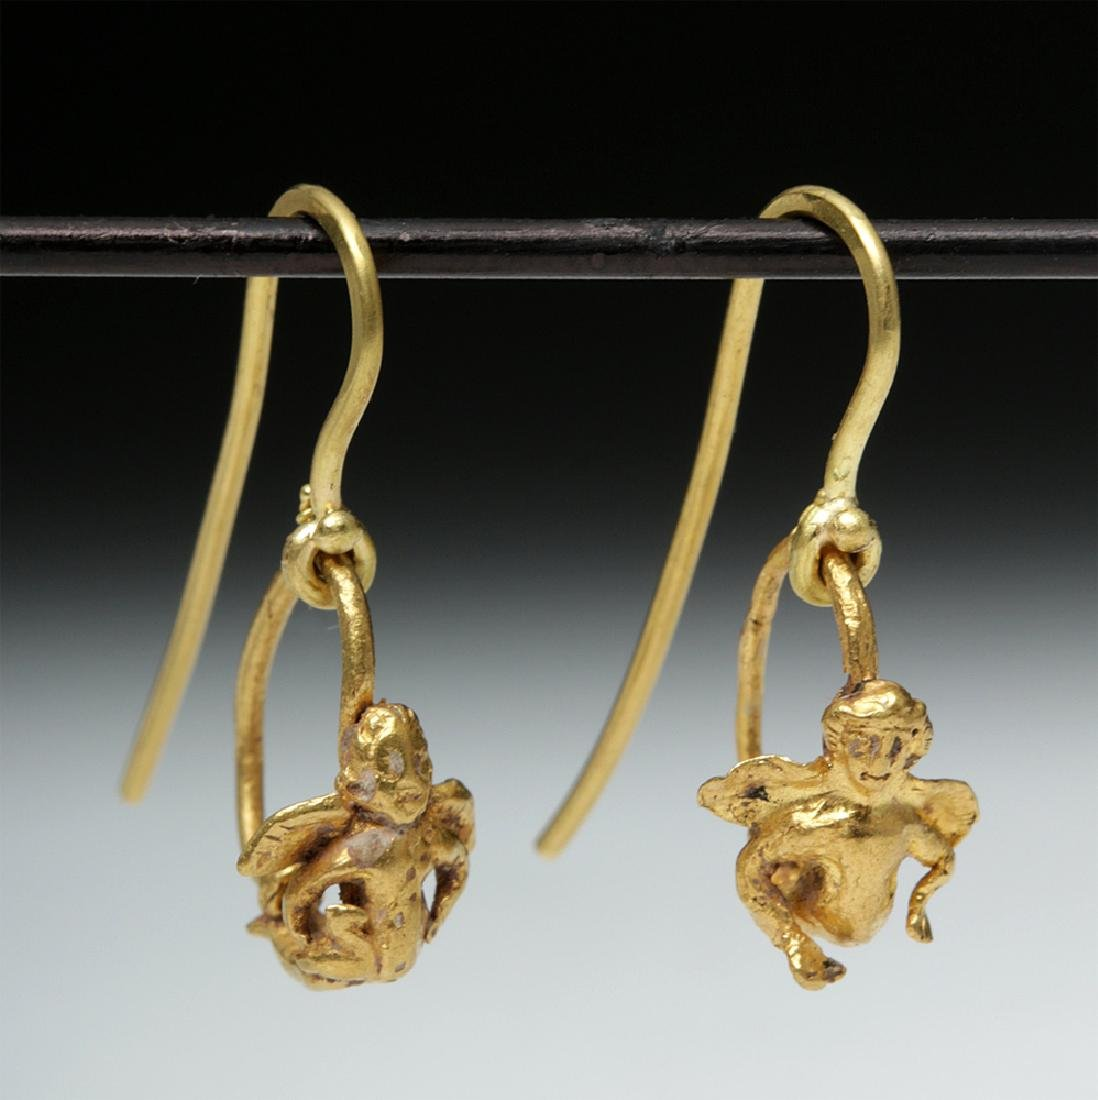 Roman High 18K Gold Earrings w/ Cherubs - 3.1 g